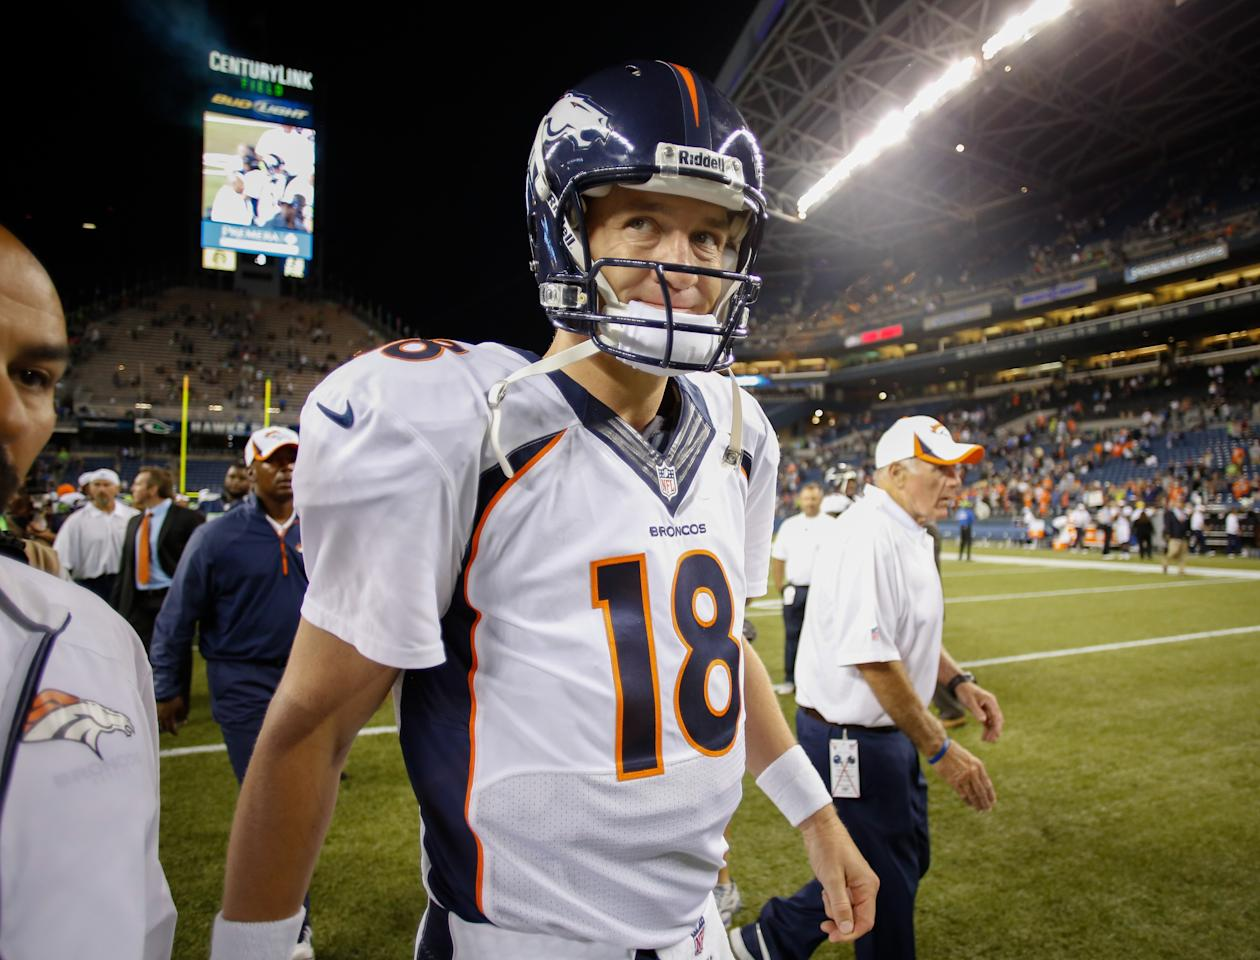 SEATTLE, WA - AUGUST 17: Quarterback Peyton Manning #18 of the Denver Broncos walks off the field after being defeated by the Seattle Seahawks 40-10 at CenturyLink Field on August 17, 2013 in Seattle, Washington. (Photo by Otto Greule Jr/Getty Images)